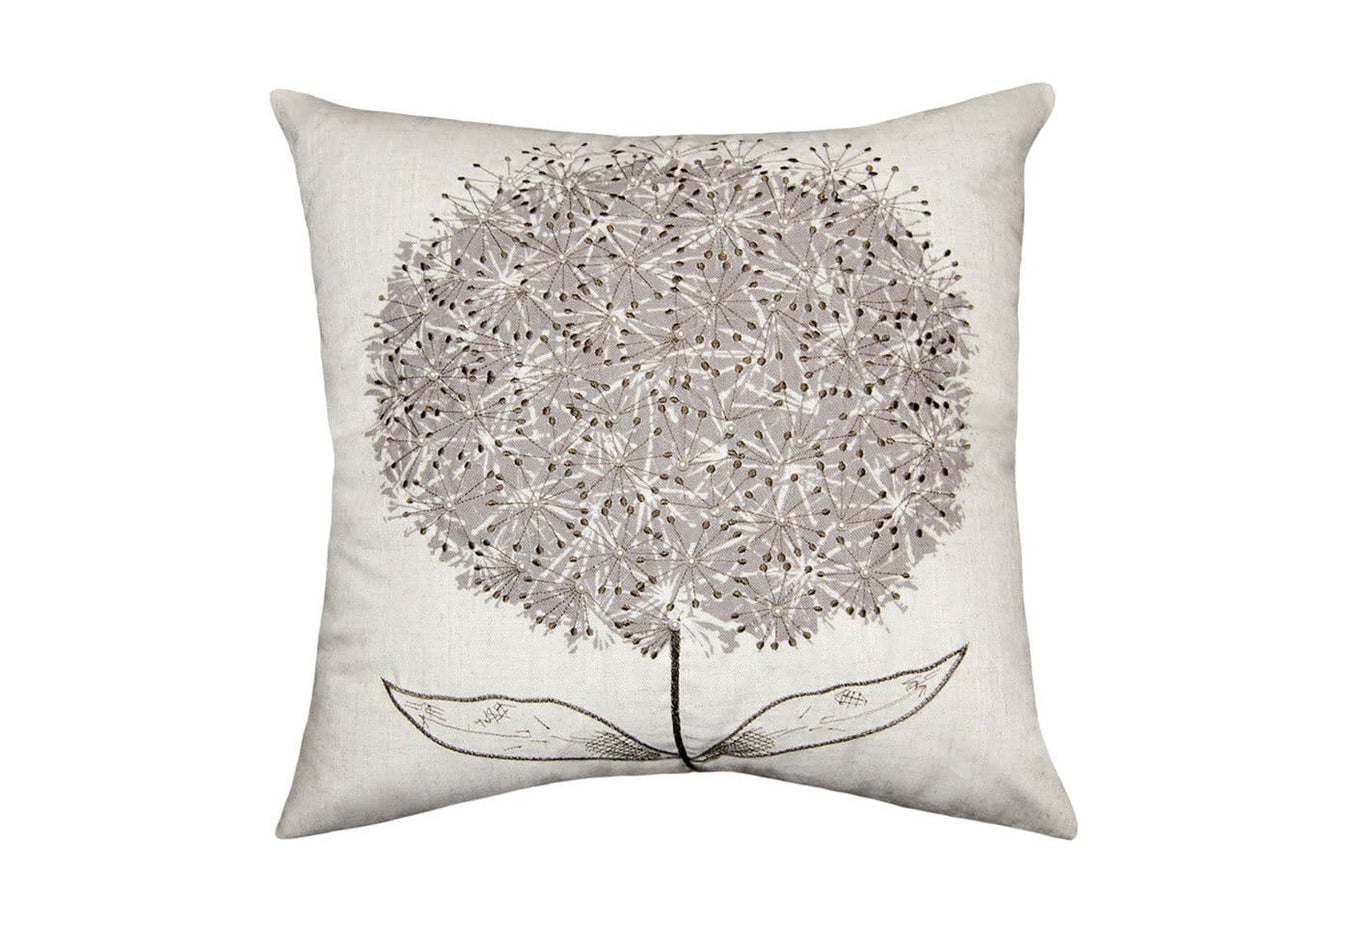 Pearly 20x20 Decorative Pillow